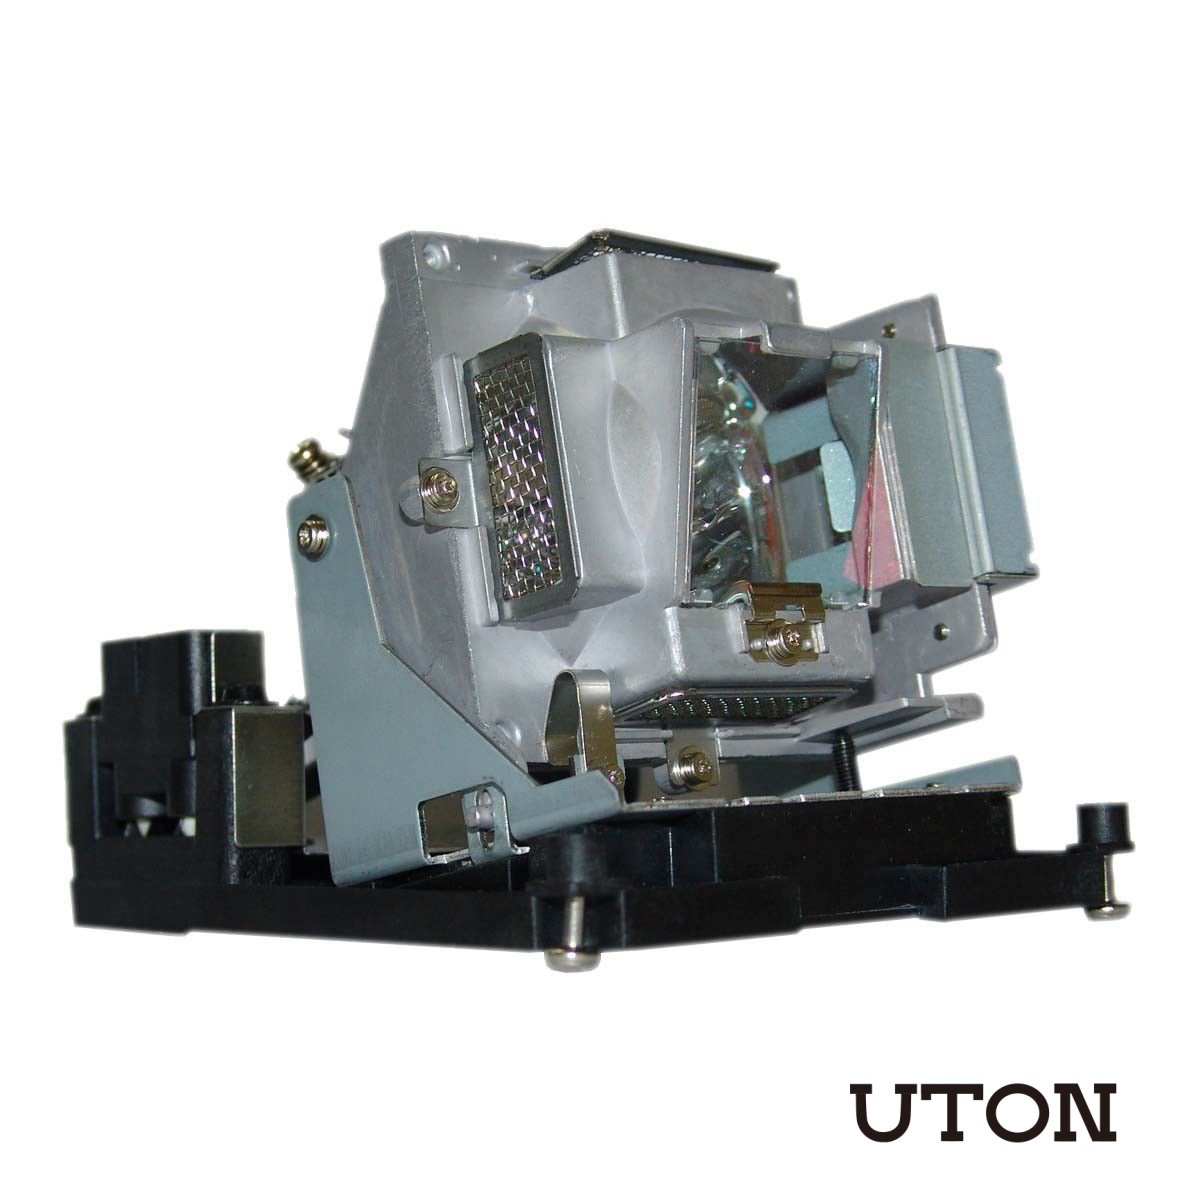 5811116701-SVV Replacement Projector Lamp for VIVITEK D963HD D965 Projector(Uton) by Uton (Image #2)